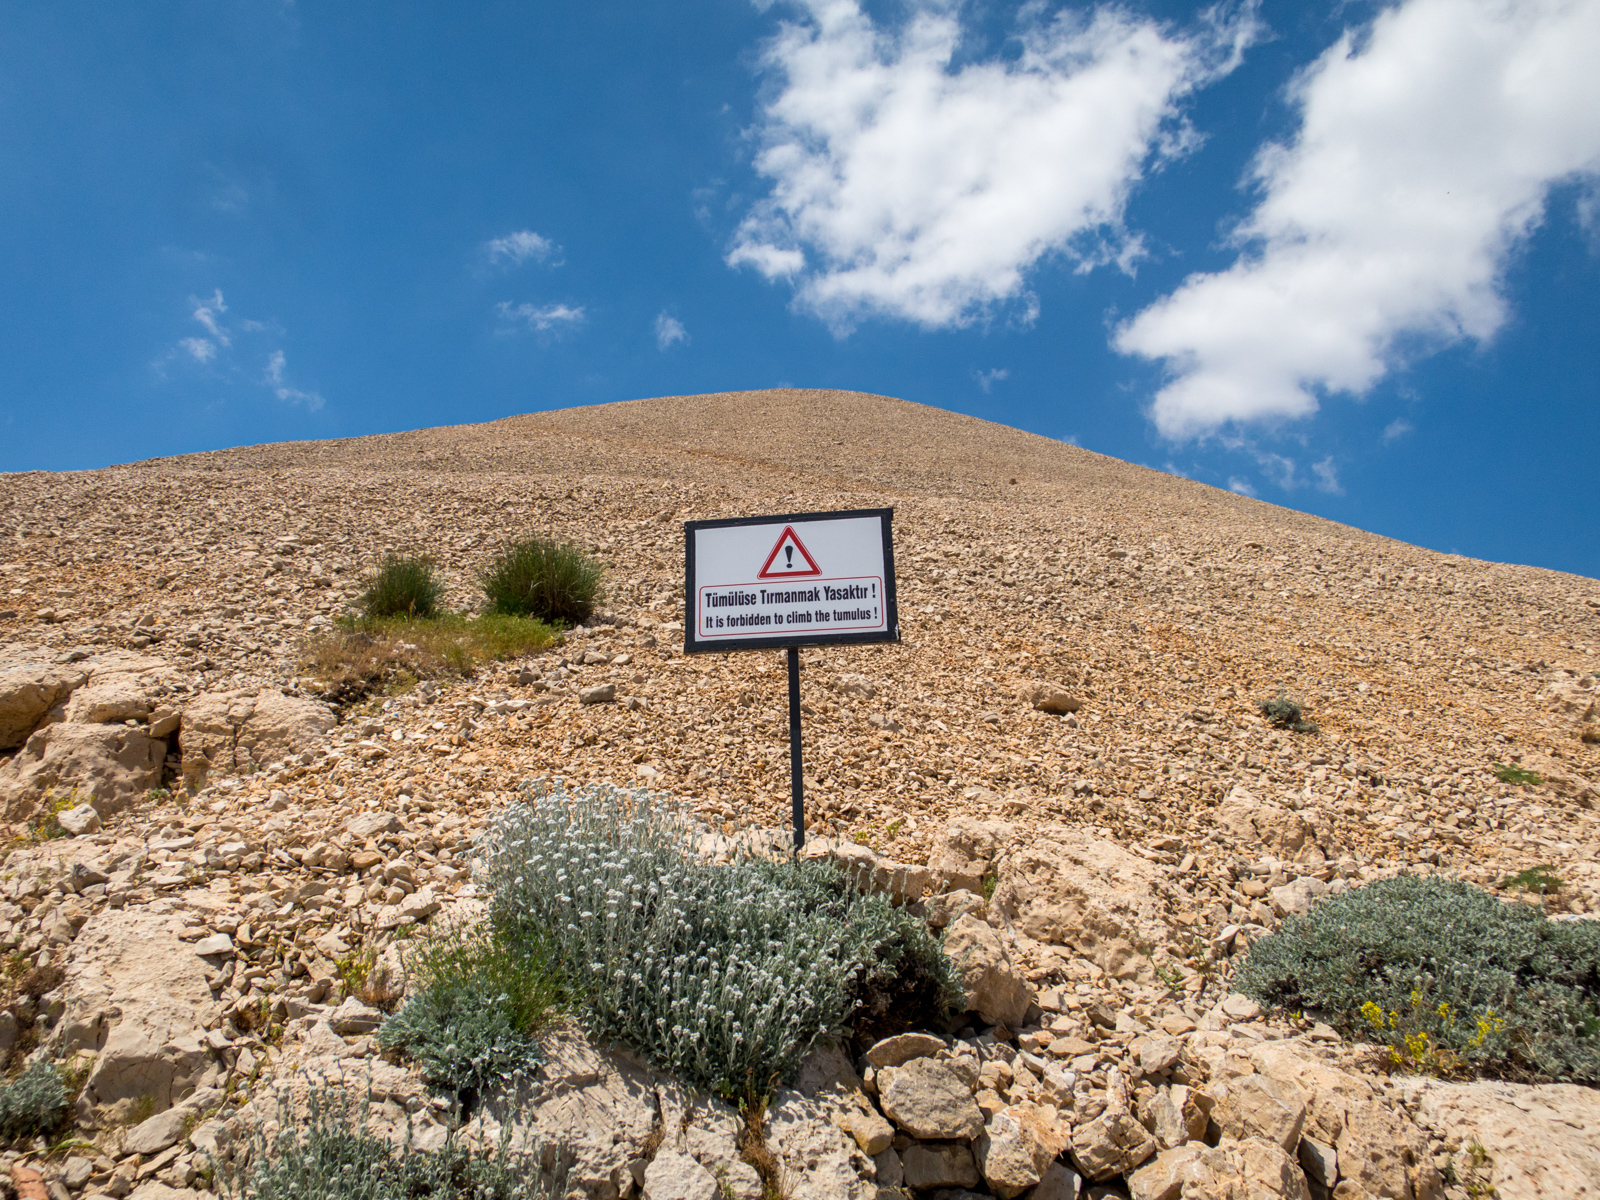 A warning against climbing on the tumulus